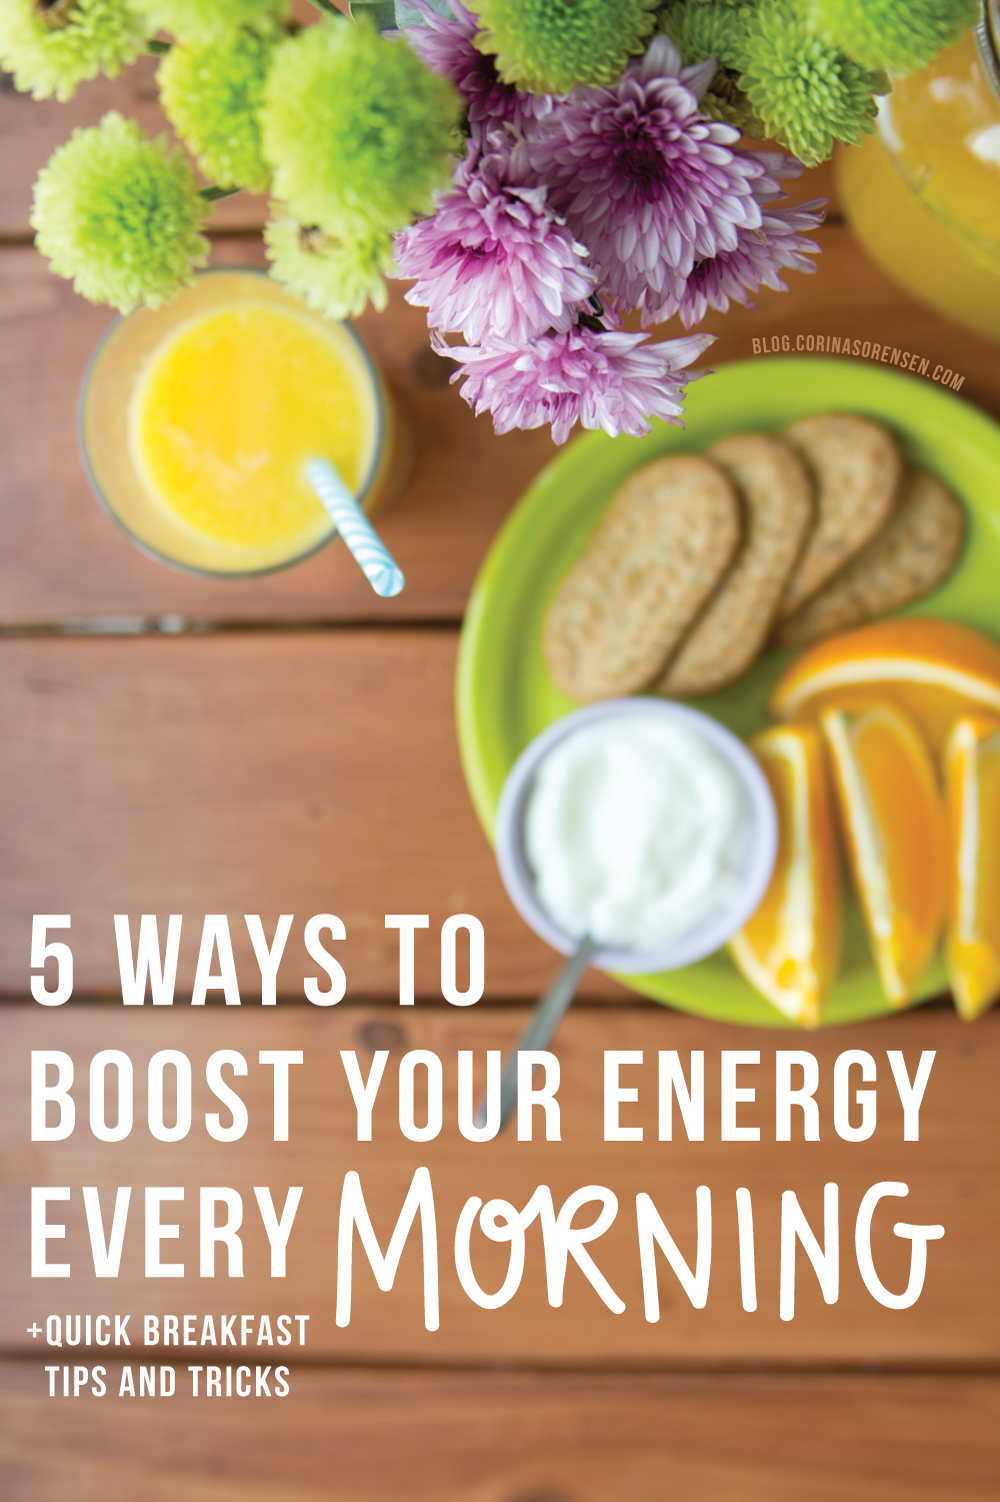 5 Ways to Boost Your Energy in the Mornings #shop #cbias